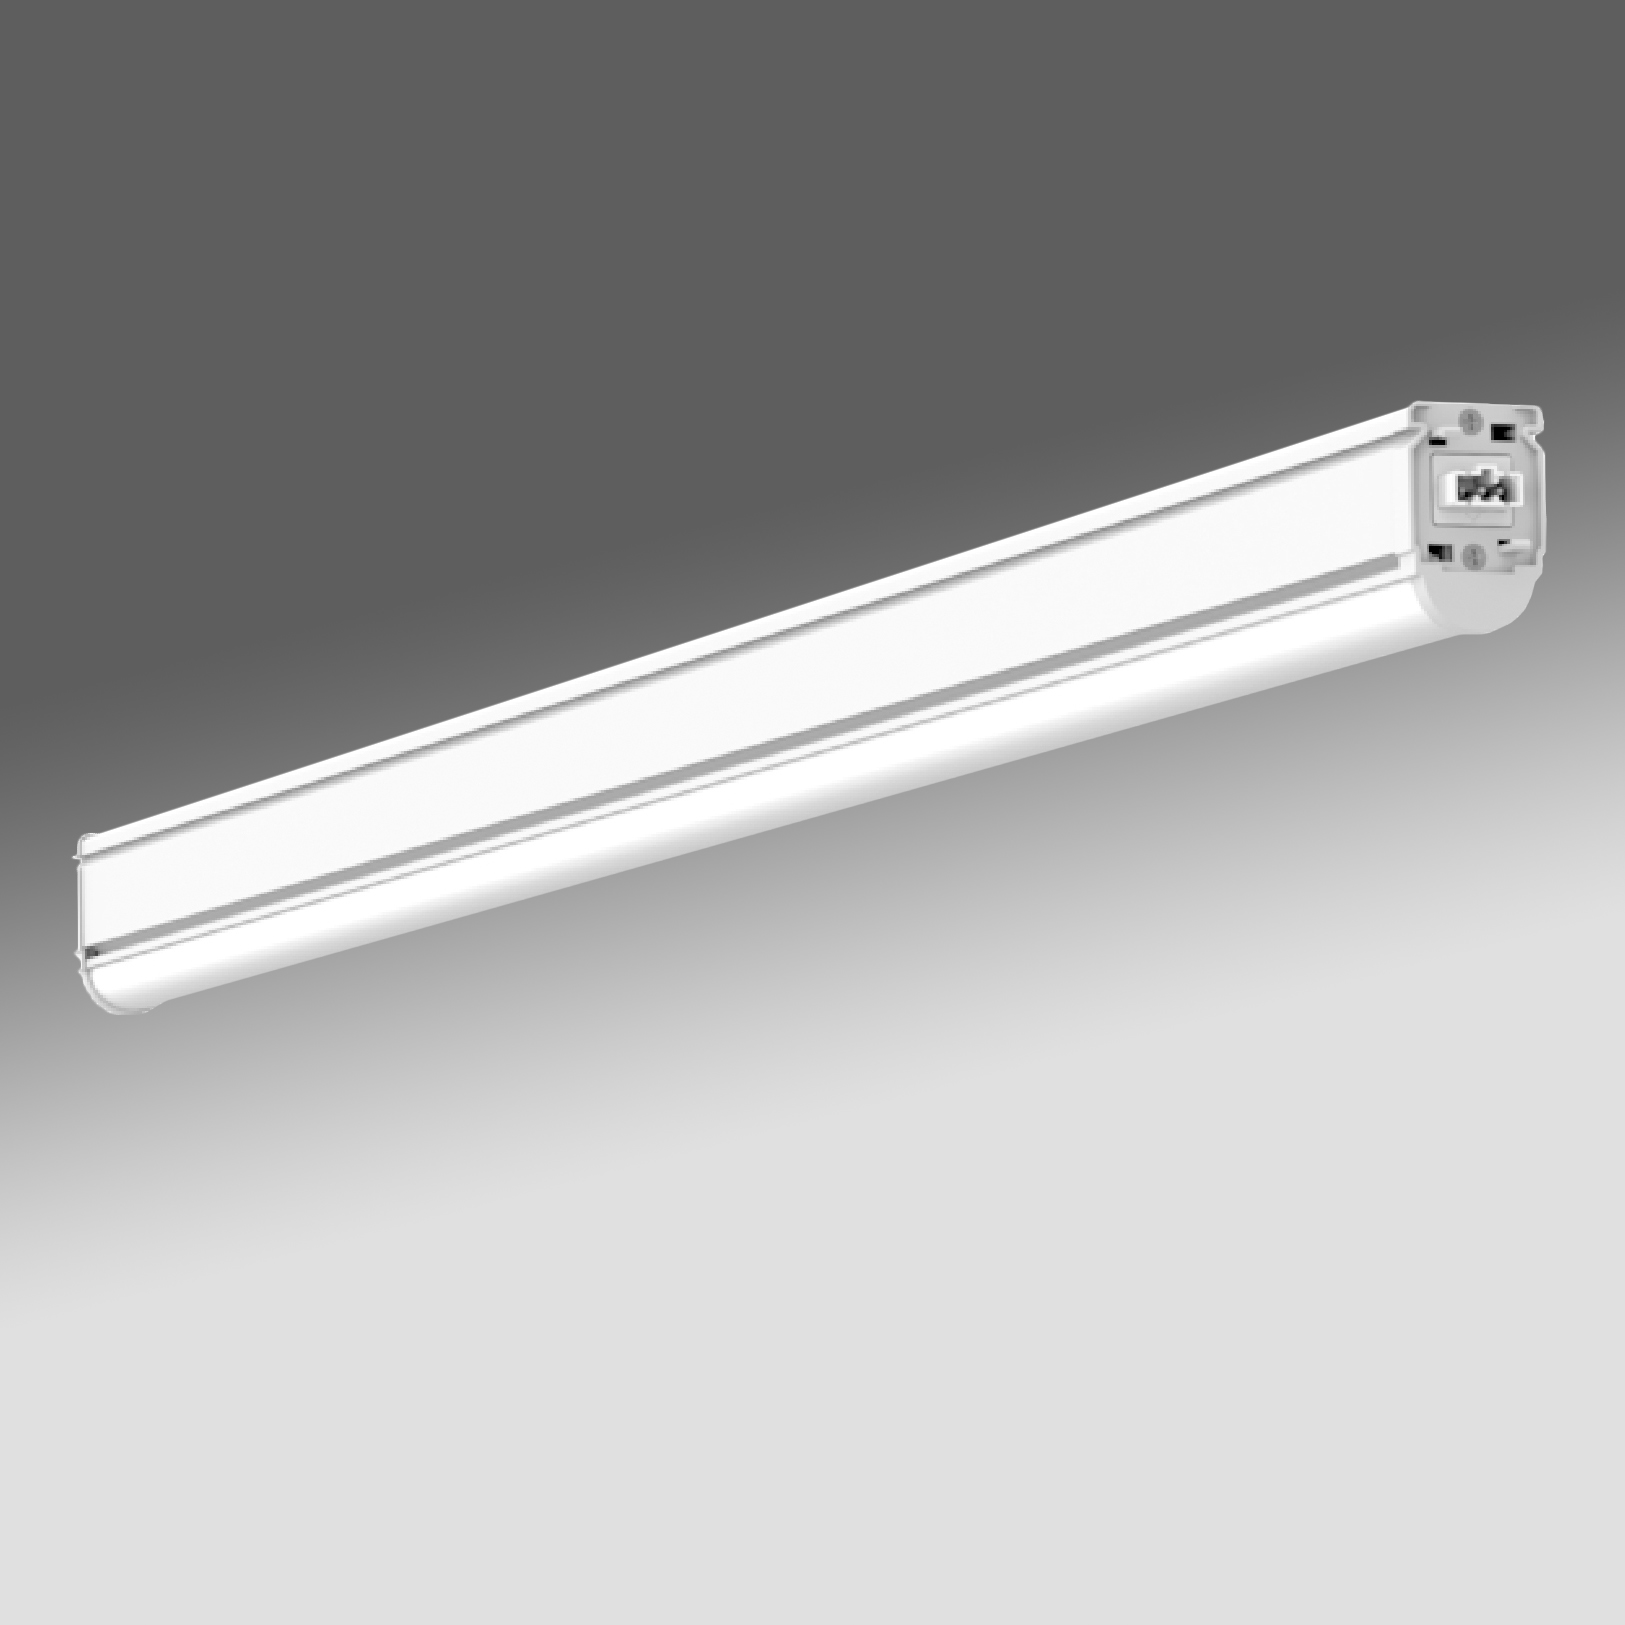 1 Stk SIMPLE LINE LED 1012 33W 3550lm/840 DALI IP20 weiß LIG8100010